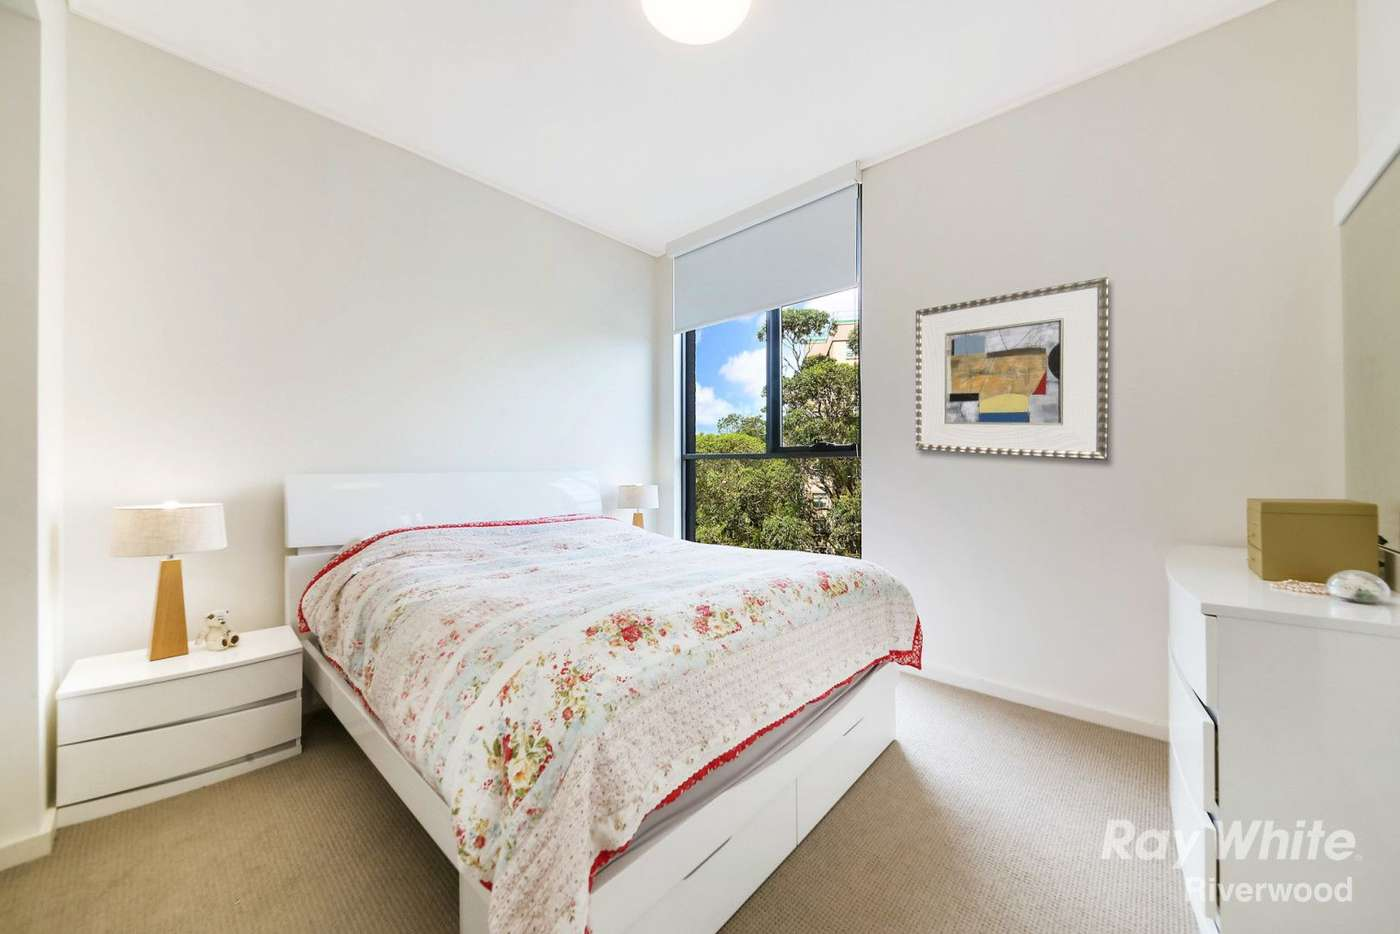 Seventh view of Homely apartment listing, 610/7 Washington Avenue, Riverwood NSW 2210